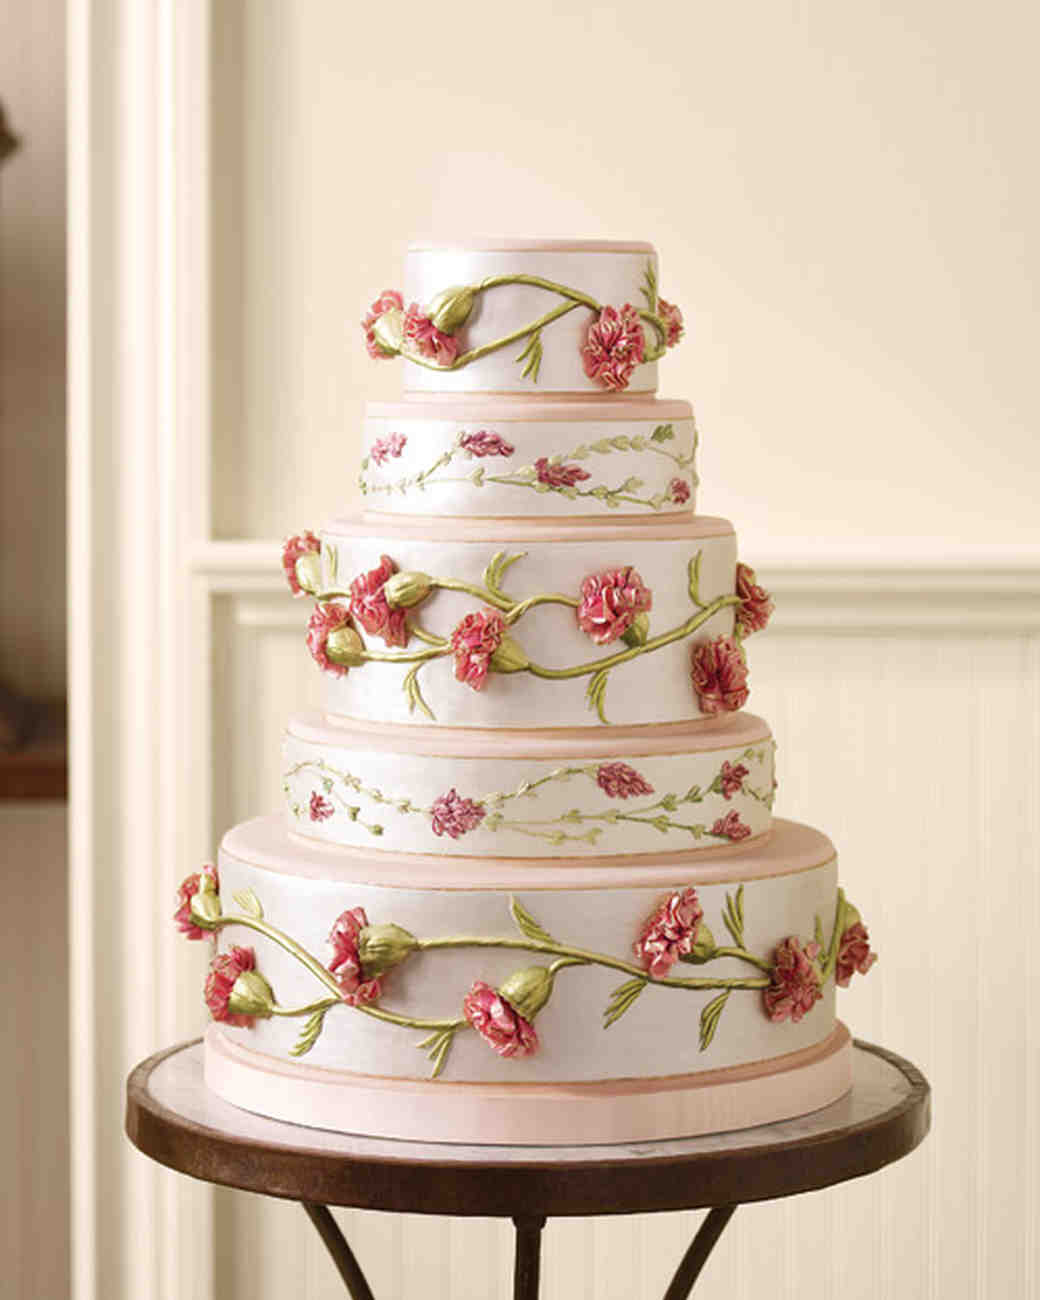 50 great wedding cakes wedding cakes pictures